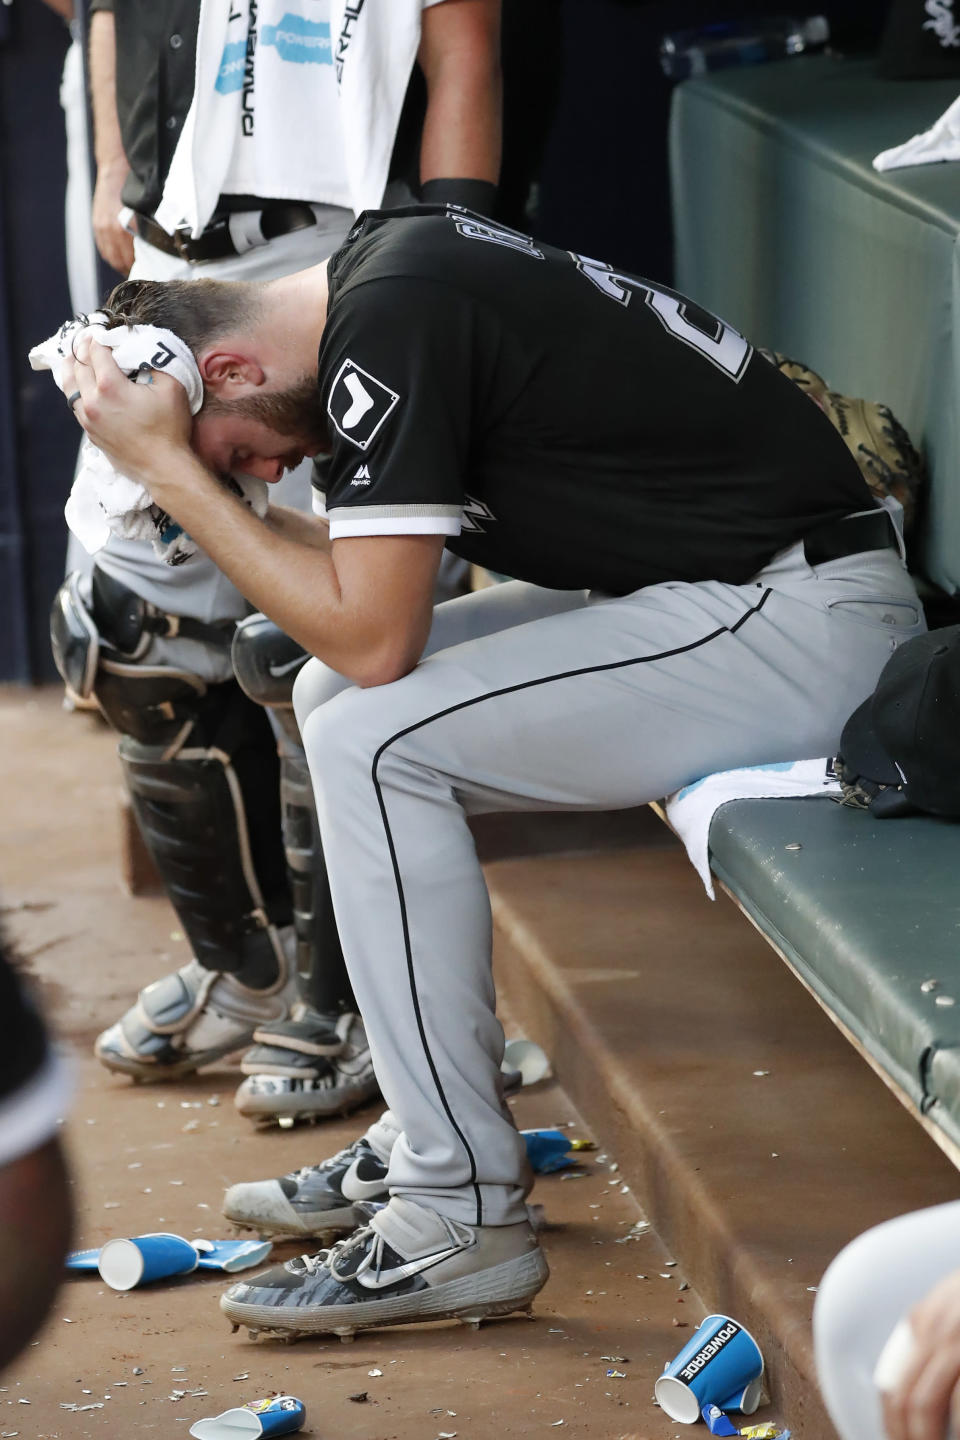 Chicago White Sox starting pitcher Lucas Giolito sits on the bench after giving up a two-run home run to Atlanta Braves' Freddie Freeman in the sixth inning of a baseball game Sunday, Sept. 1, 2019, in Atlanta. (AP Photo/John Bazemore)